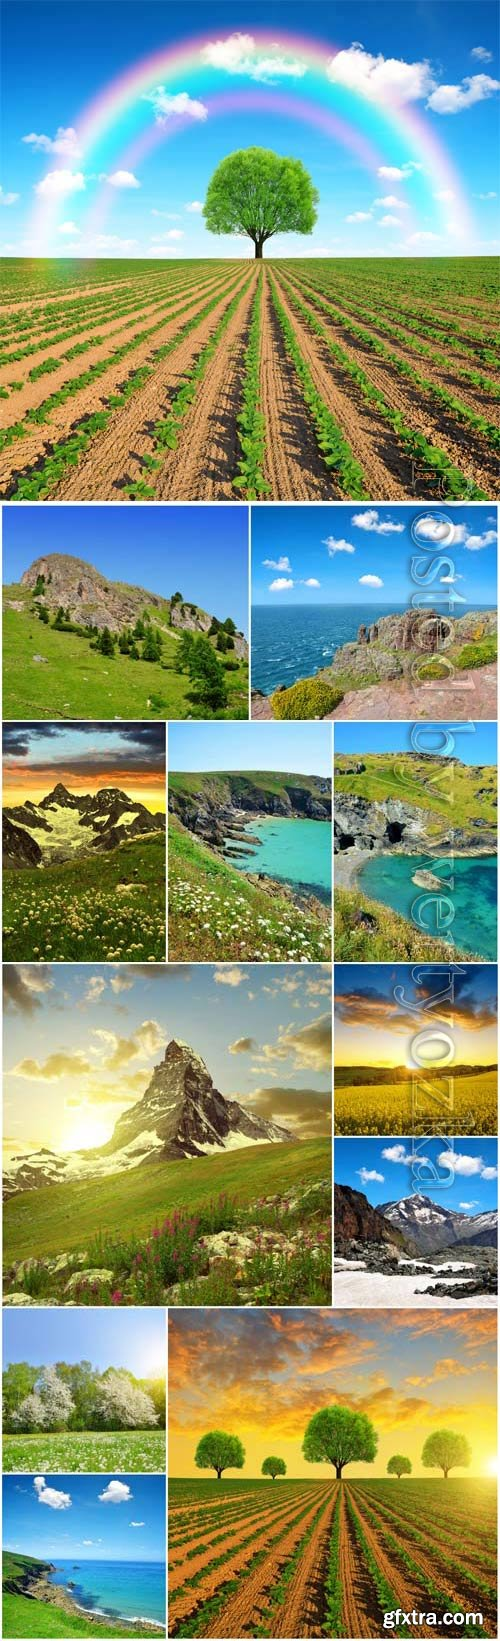 Beautiful nature mountains and meadows stock photo